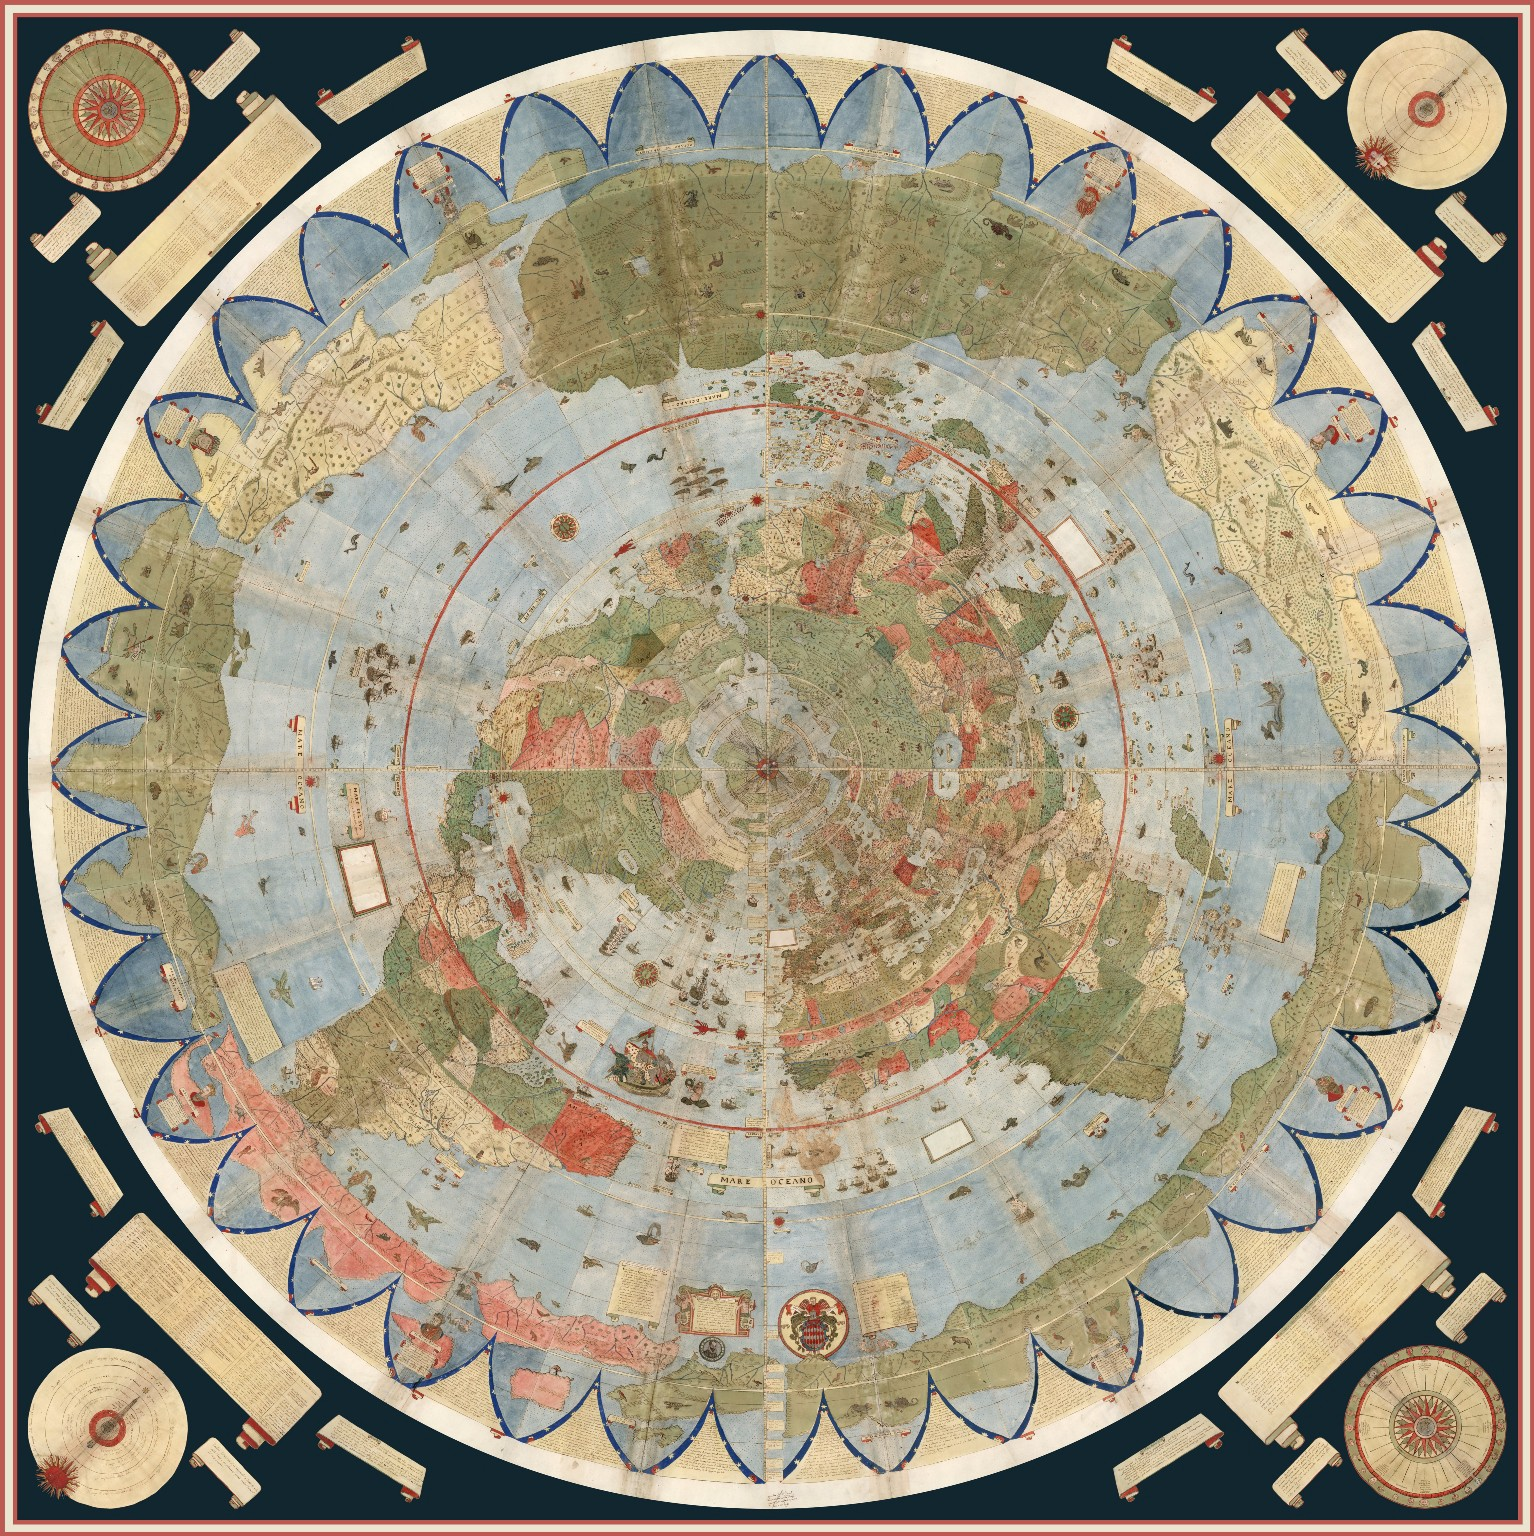 The largest early world map is unveiled for the first time gumiabroncs Image collections